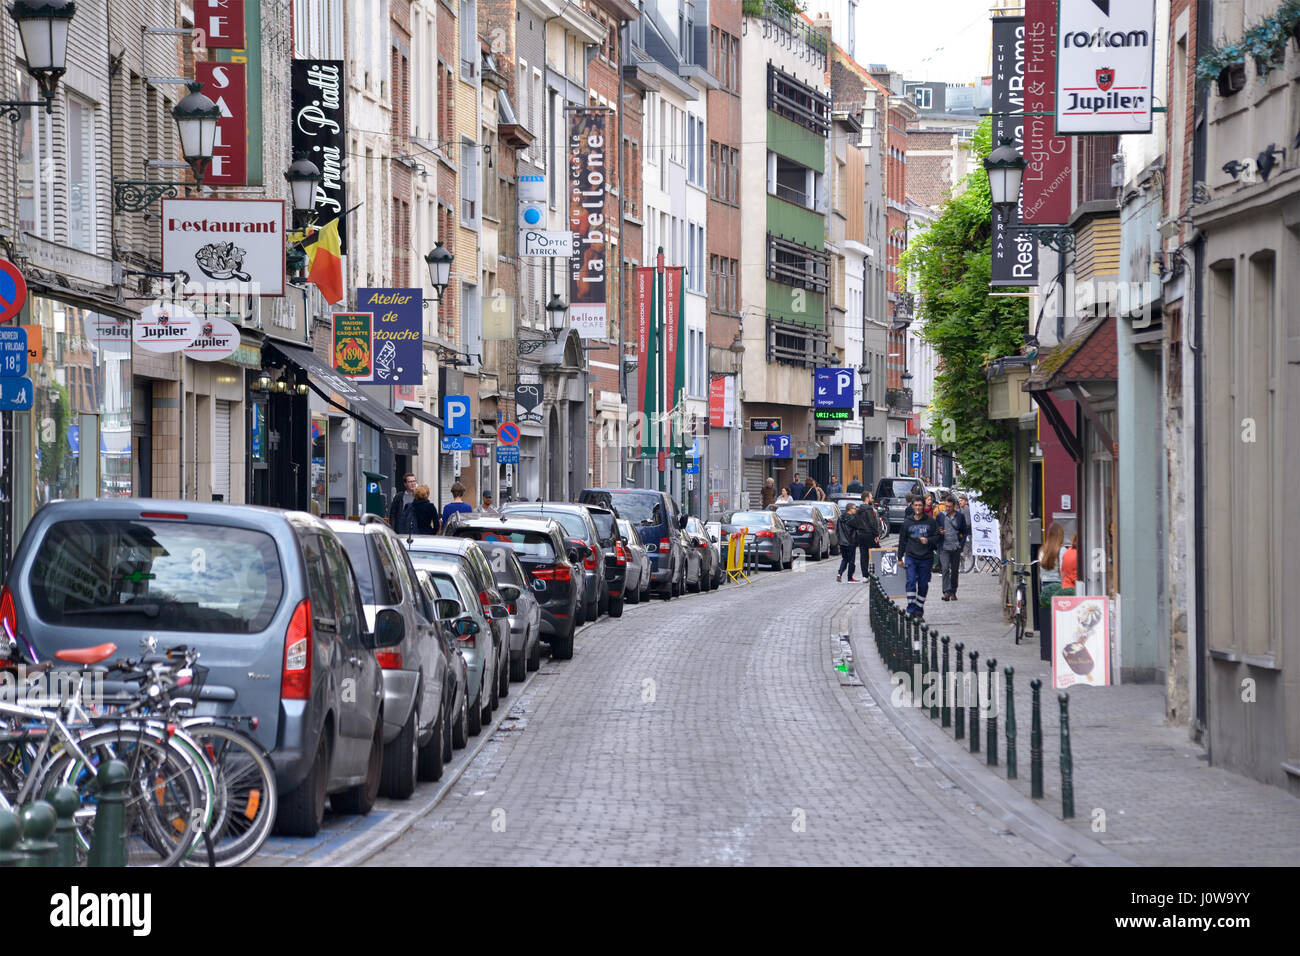 Busy commercial street in center of city on October 1, 2016, in Brussels, Belgium - Stock Image